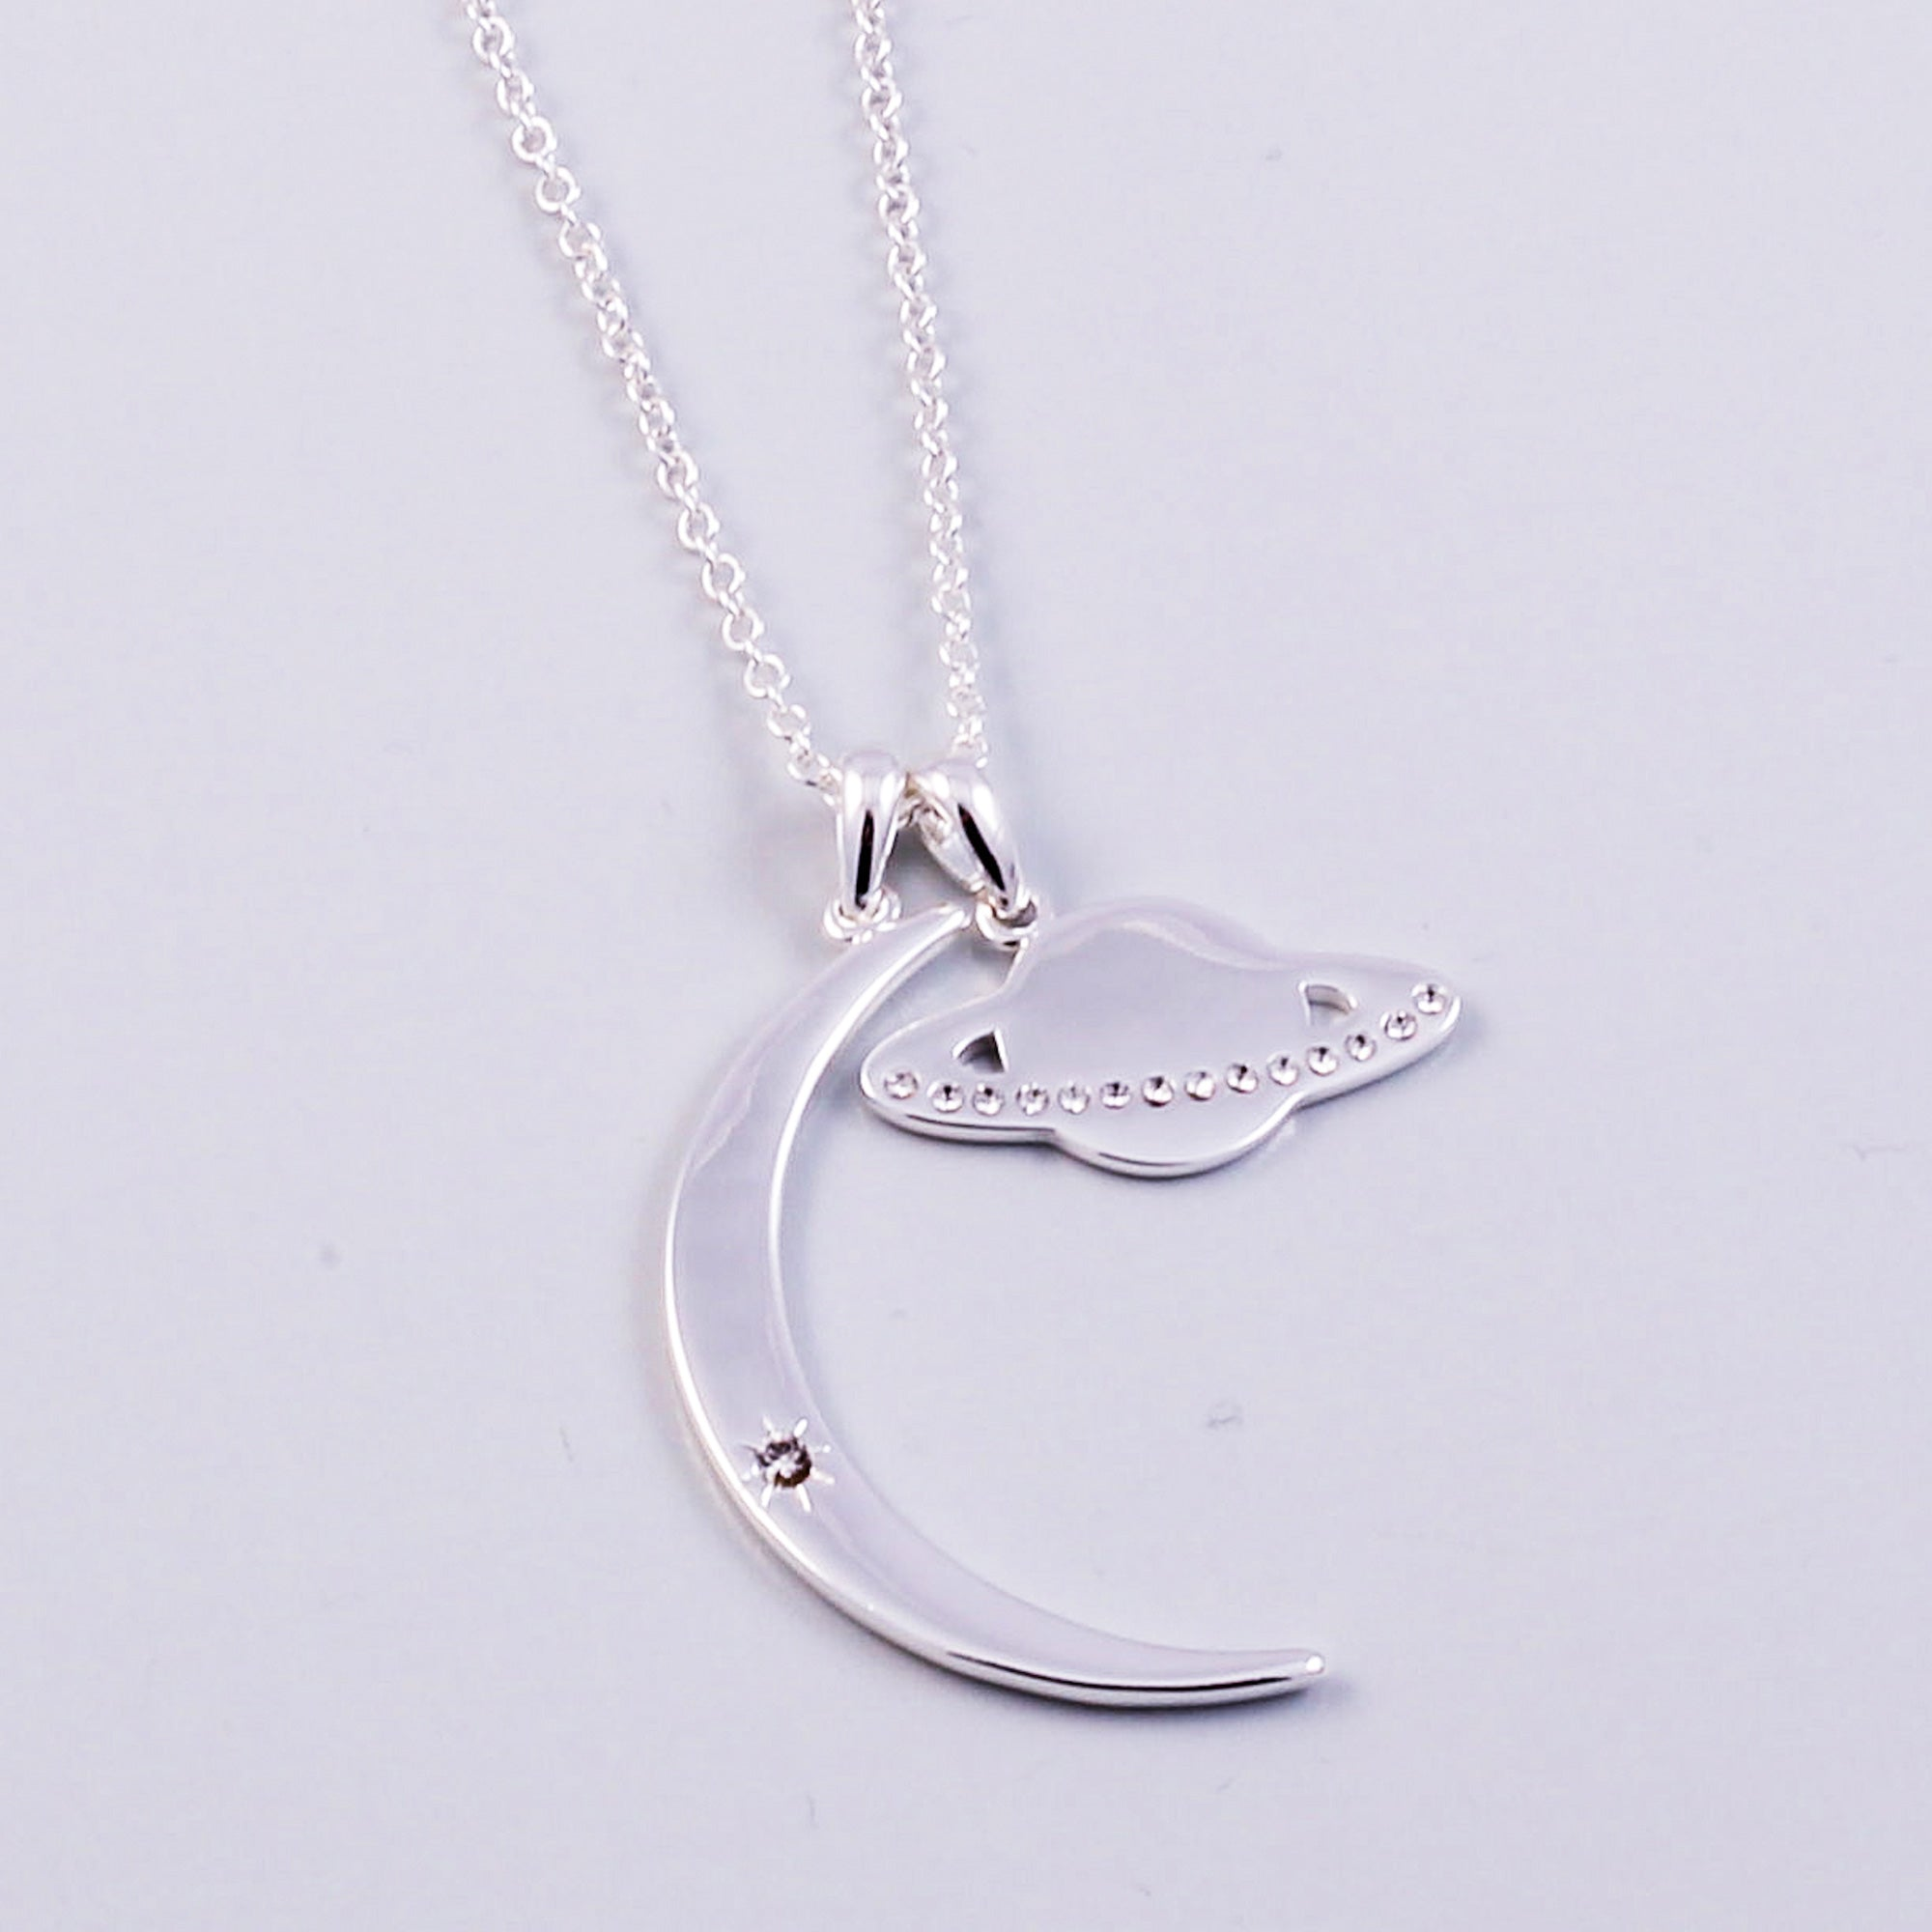 Silver Moon & Planet Necklace